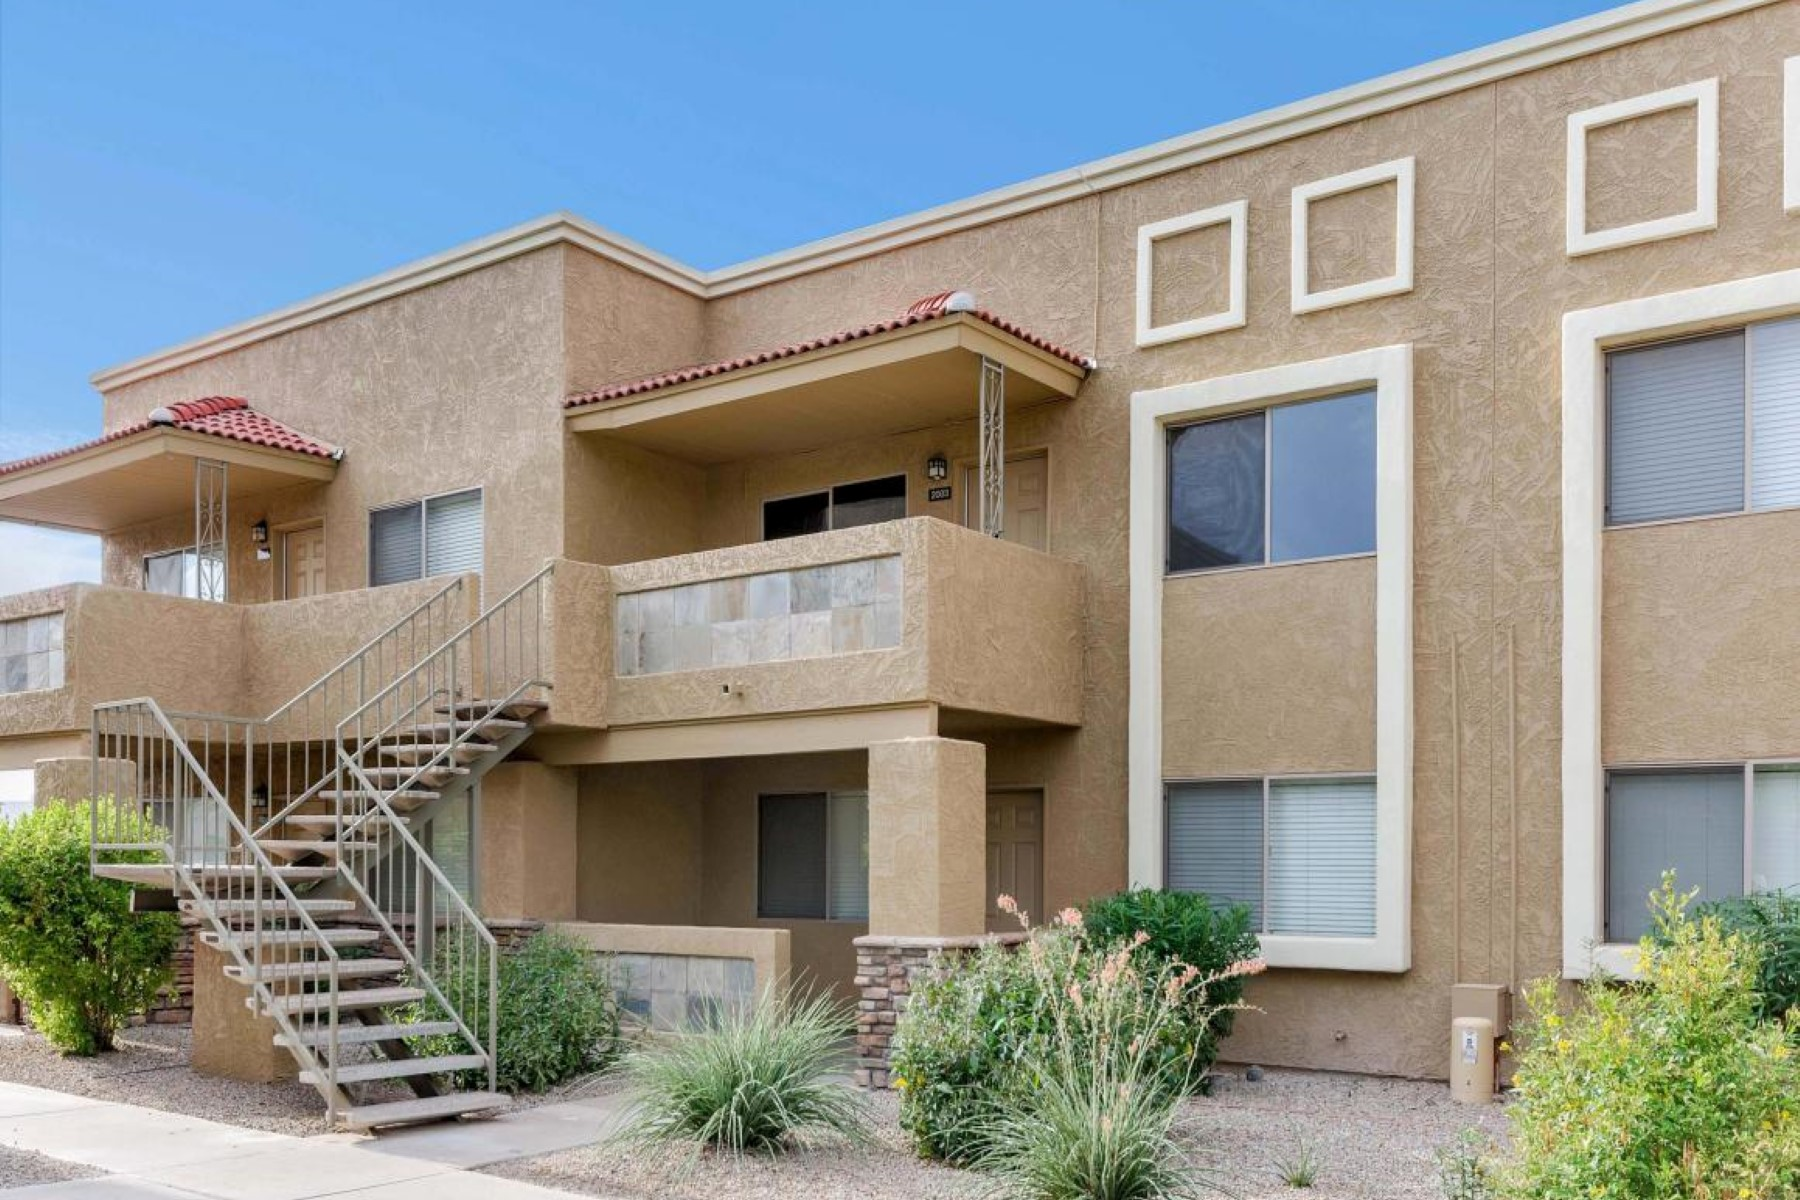 Apartment for Sale at Great two bed one bath Scottsdale condo. 303 N MILLER RD 2003 2003 Scottsdale, Arizona 85257 United States